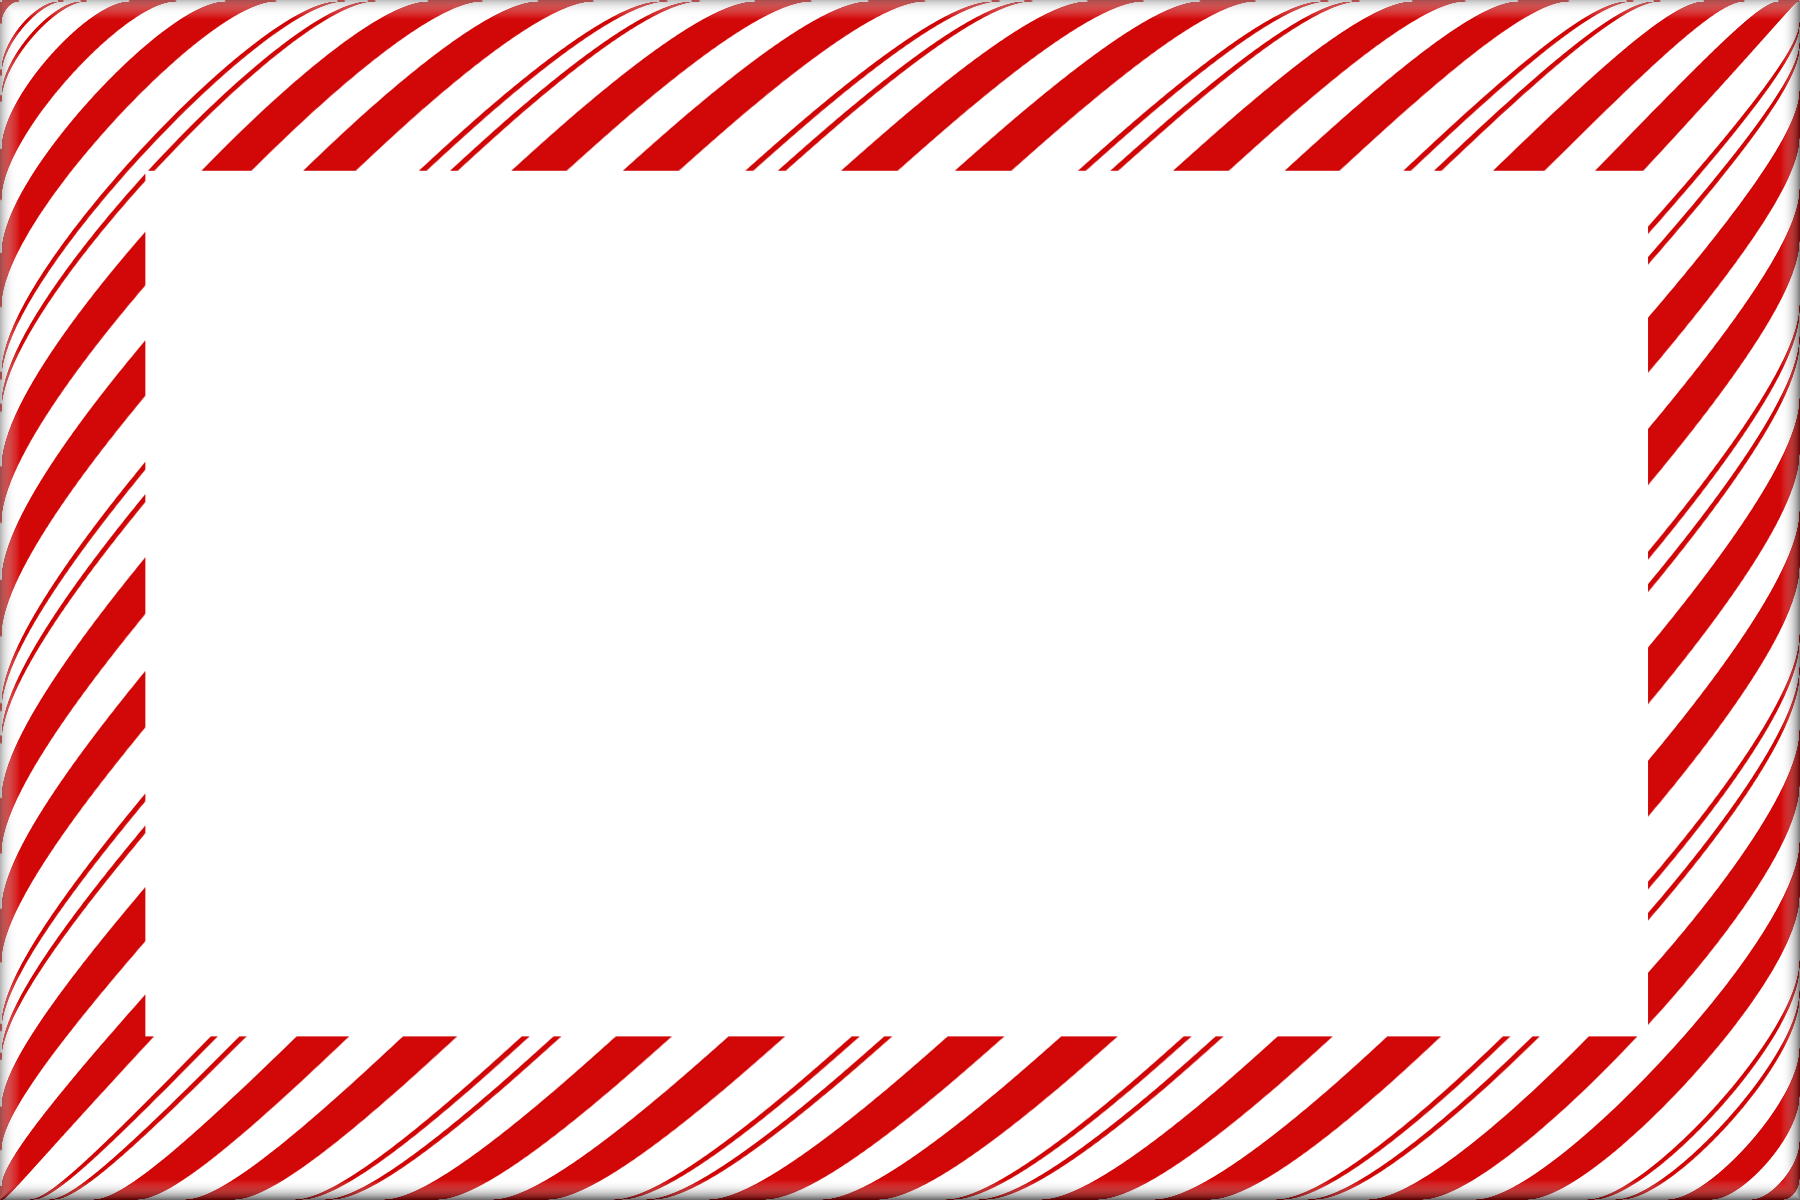 image royalty free download Candy Cane Christmas Borders and Frames